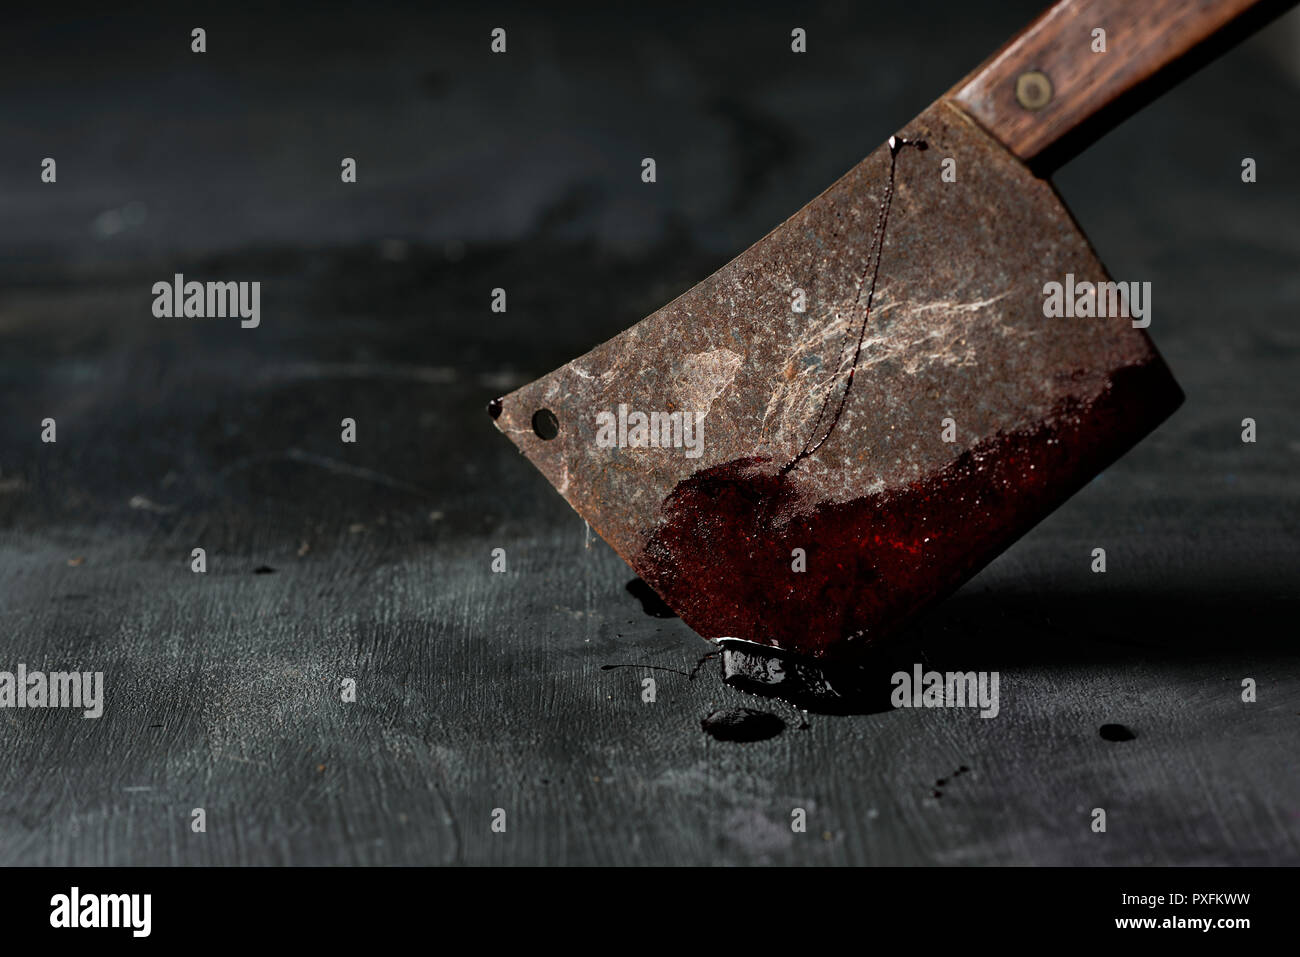 closeup of an old and rusty meat cleaver full of blood, stuck on a dark green rustic surface - Stock Image